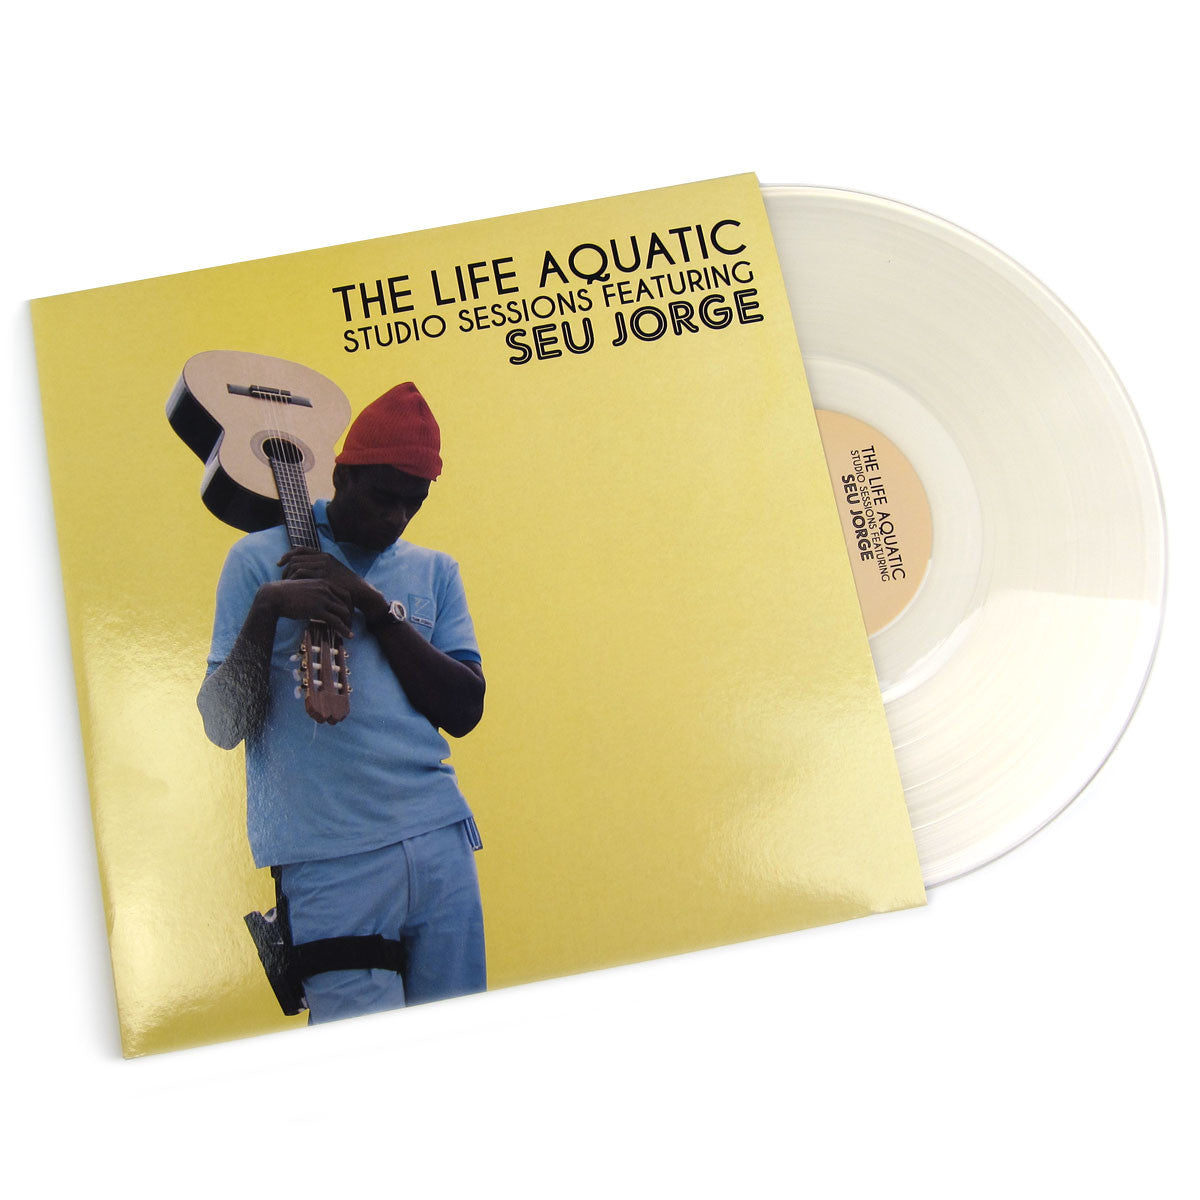 Seu Jorge: The Life Aquatic Studio Sessions (Colored Vinyl) Vinyl 2LP